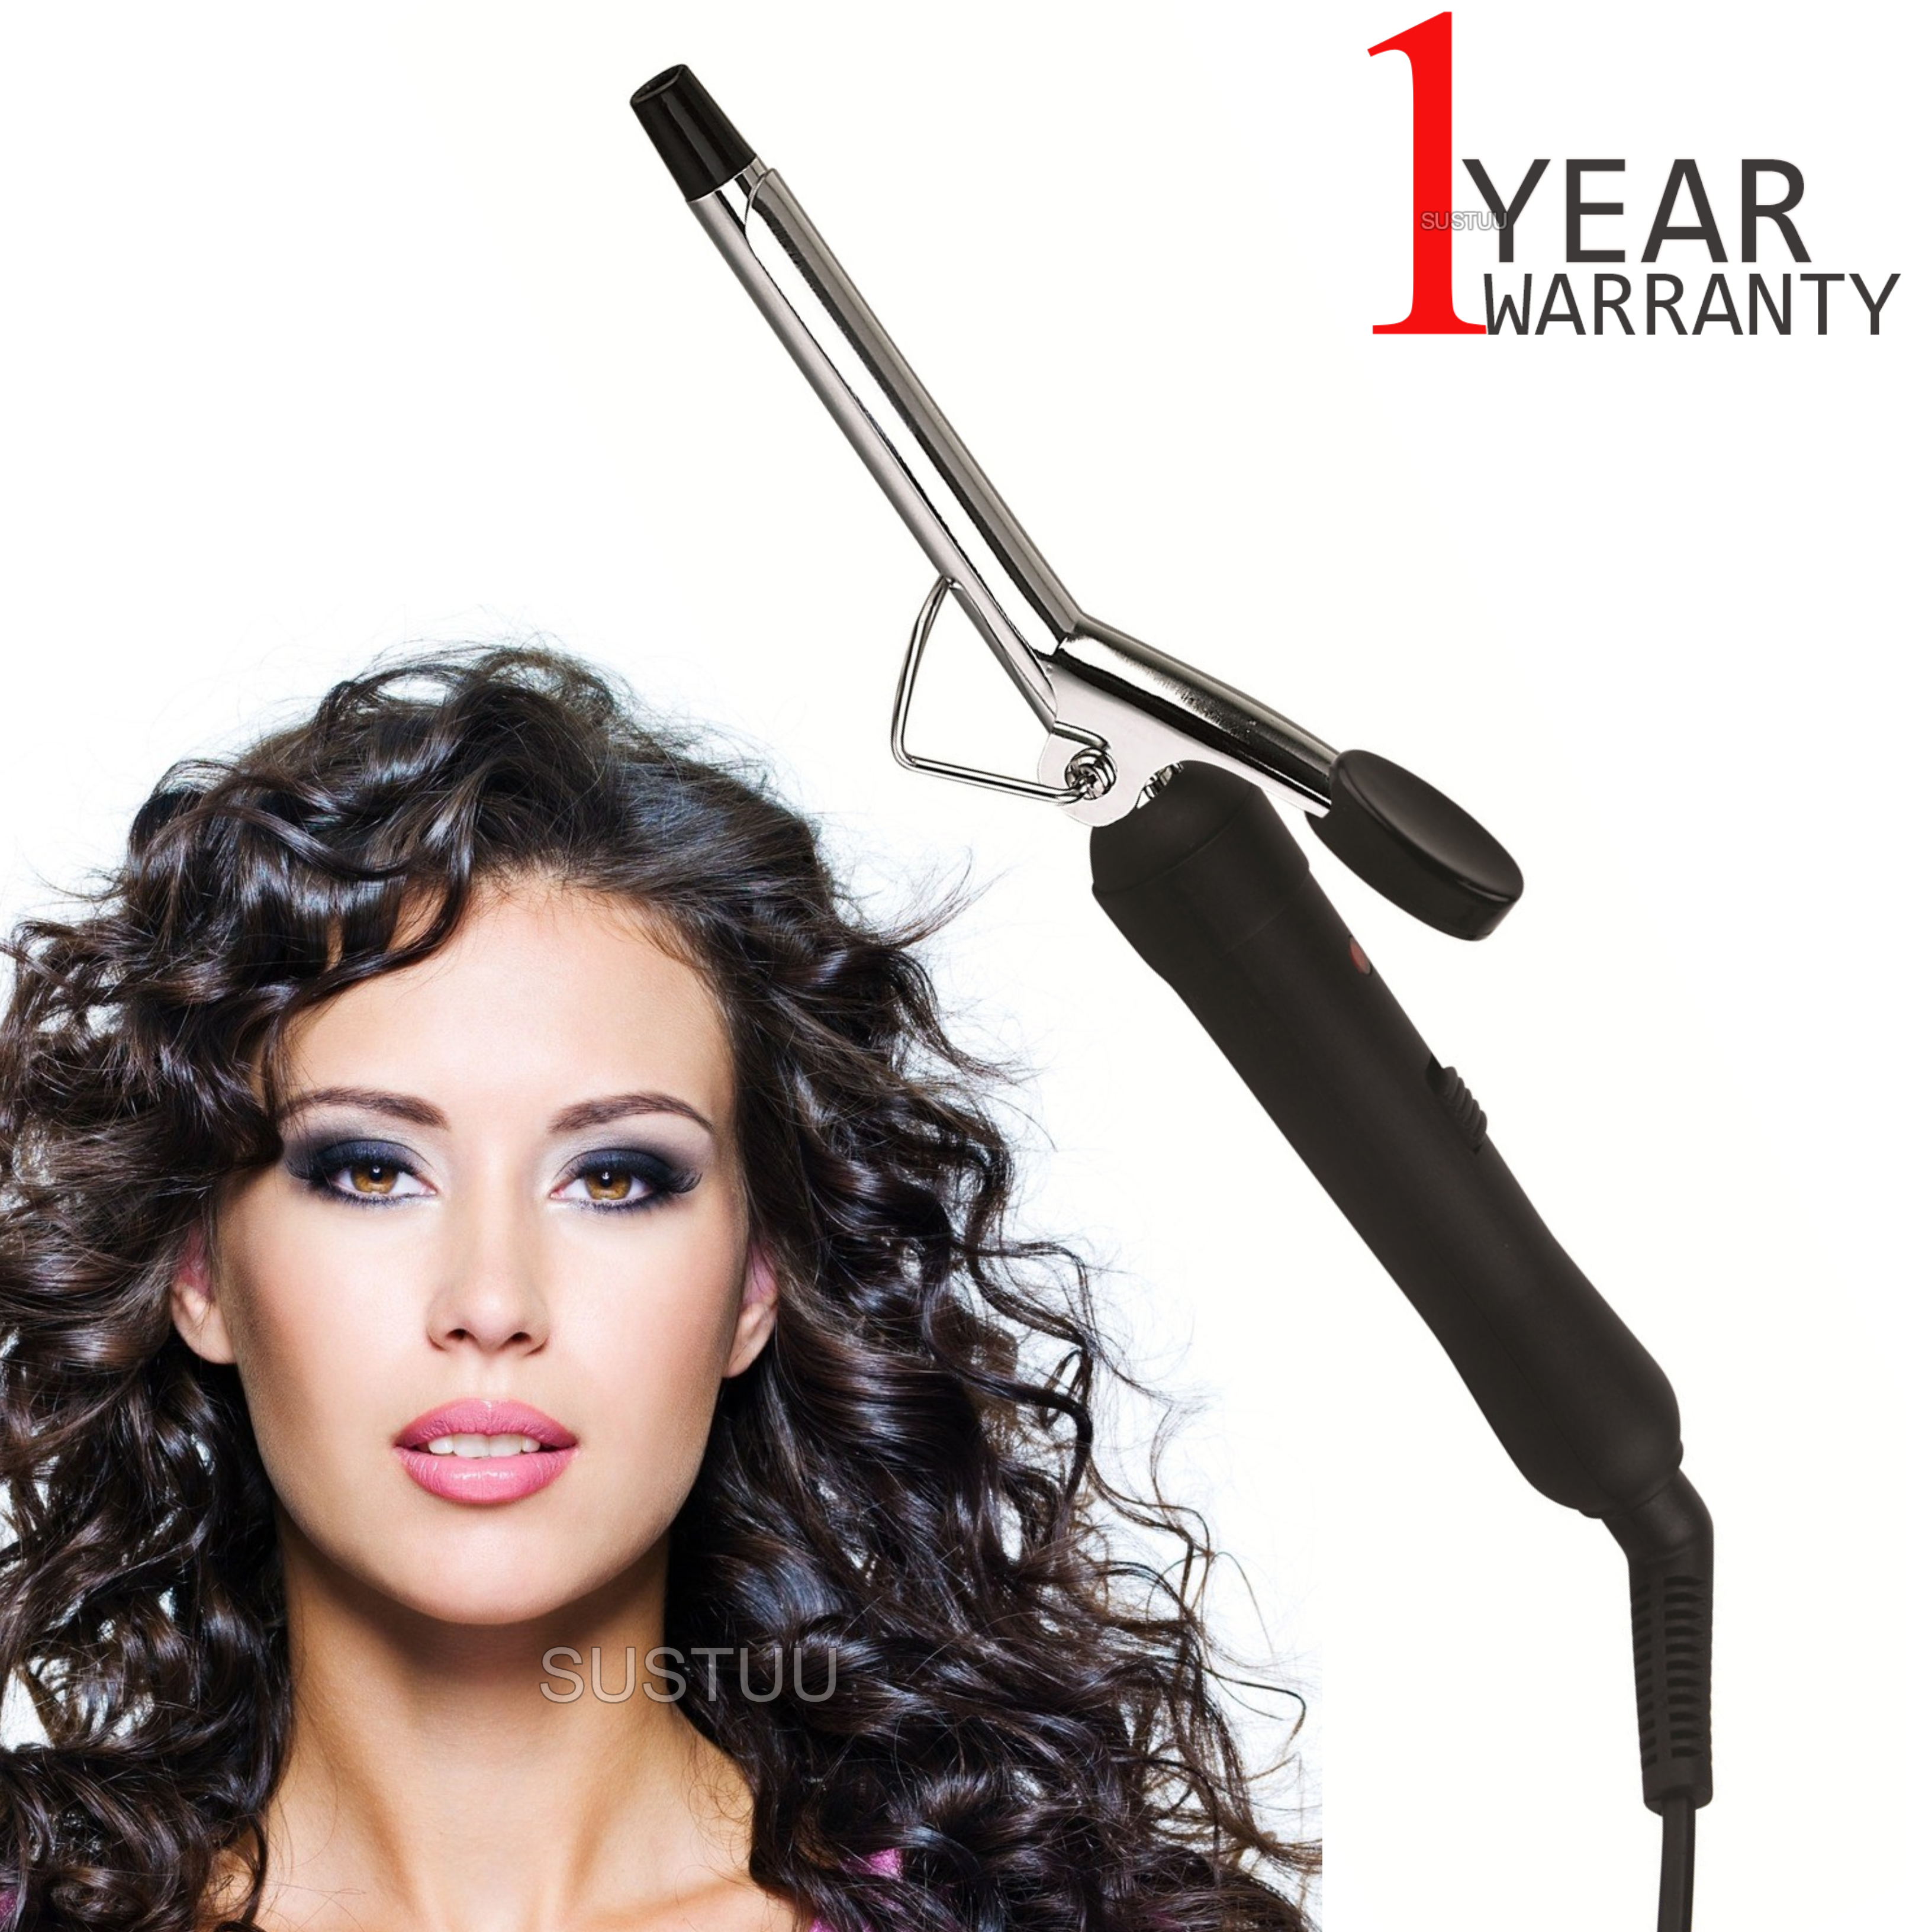 Omega Slimline Hair Curling Tong | 13mm Barrel | Power On/Off Switch | 360° Swivel Cord